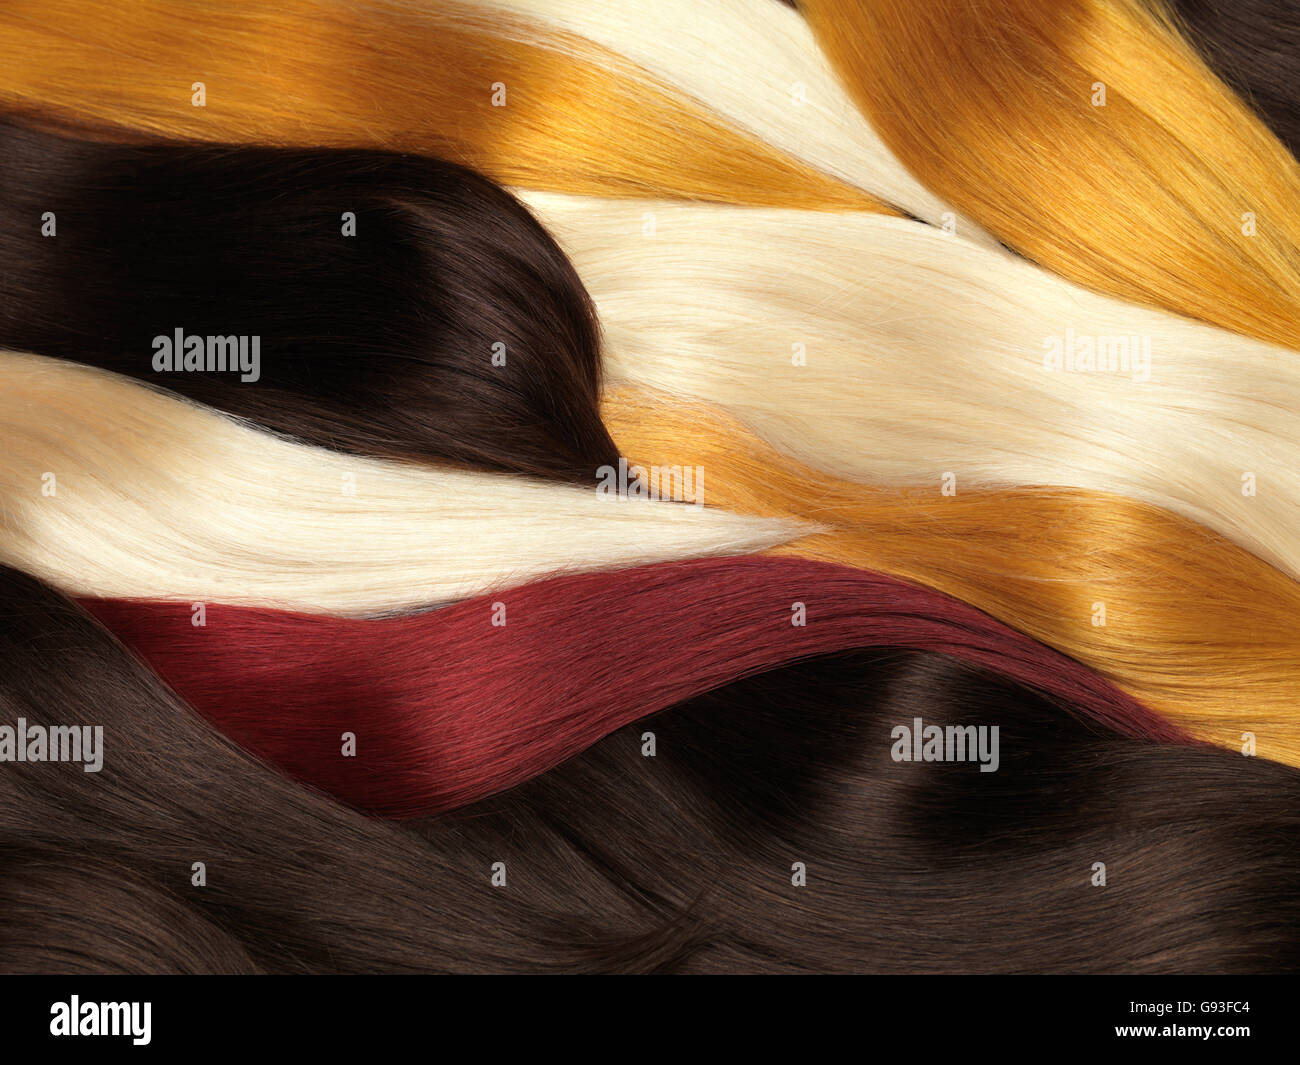 Multicolored Hair Extensions Stock Photos Multicolored Hair